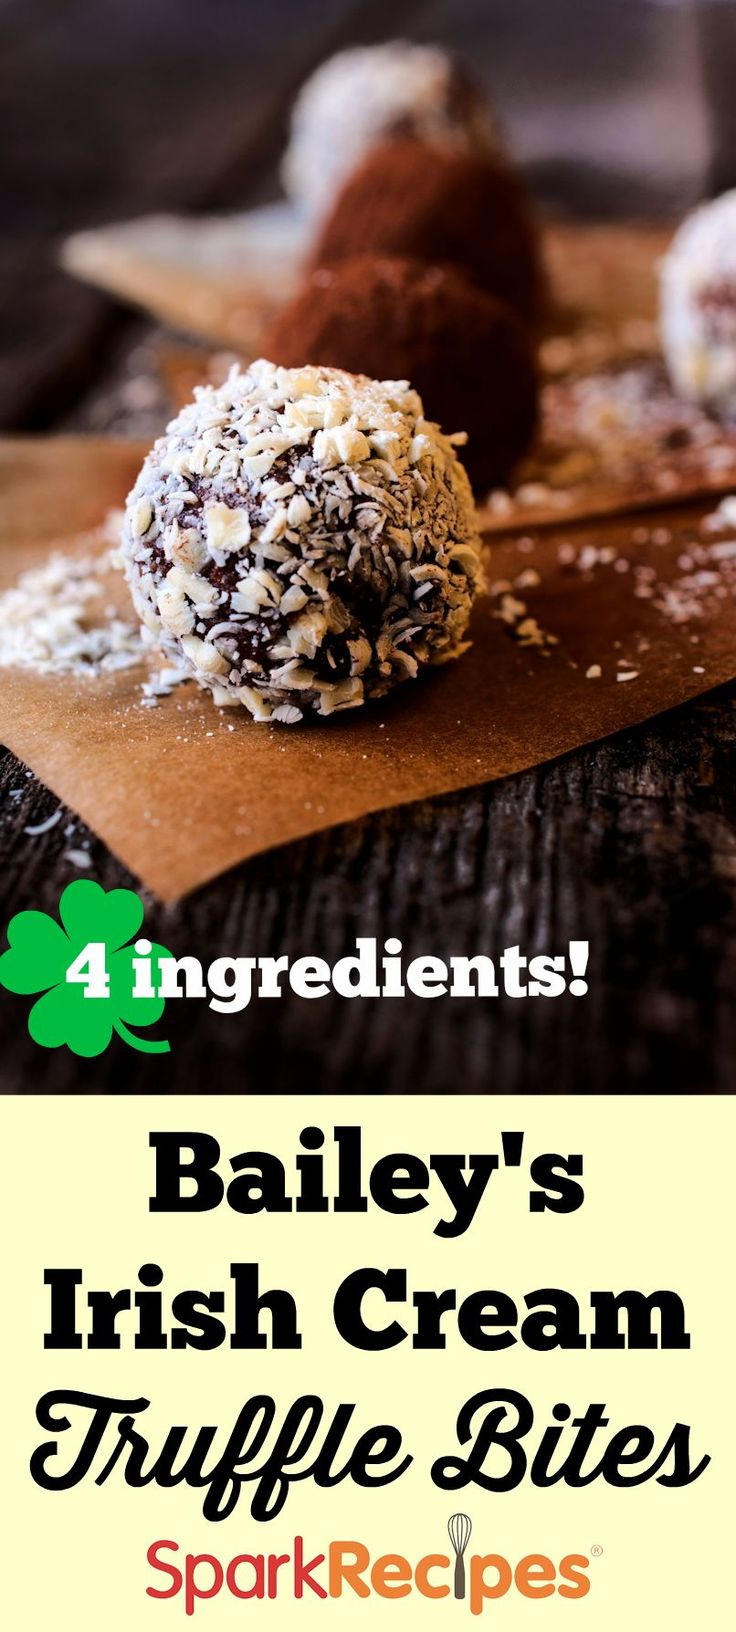 Try these Bailey's Irish Cream truffle bites for St. Patrick's Day when you want a little sweet treat for dessert.